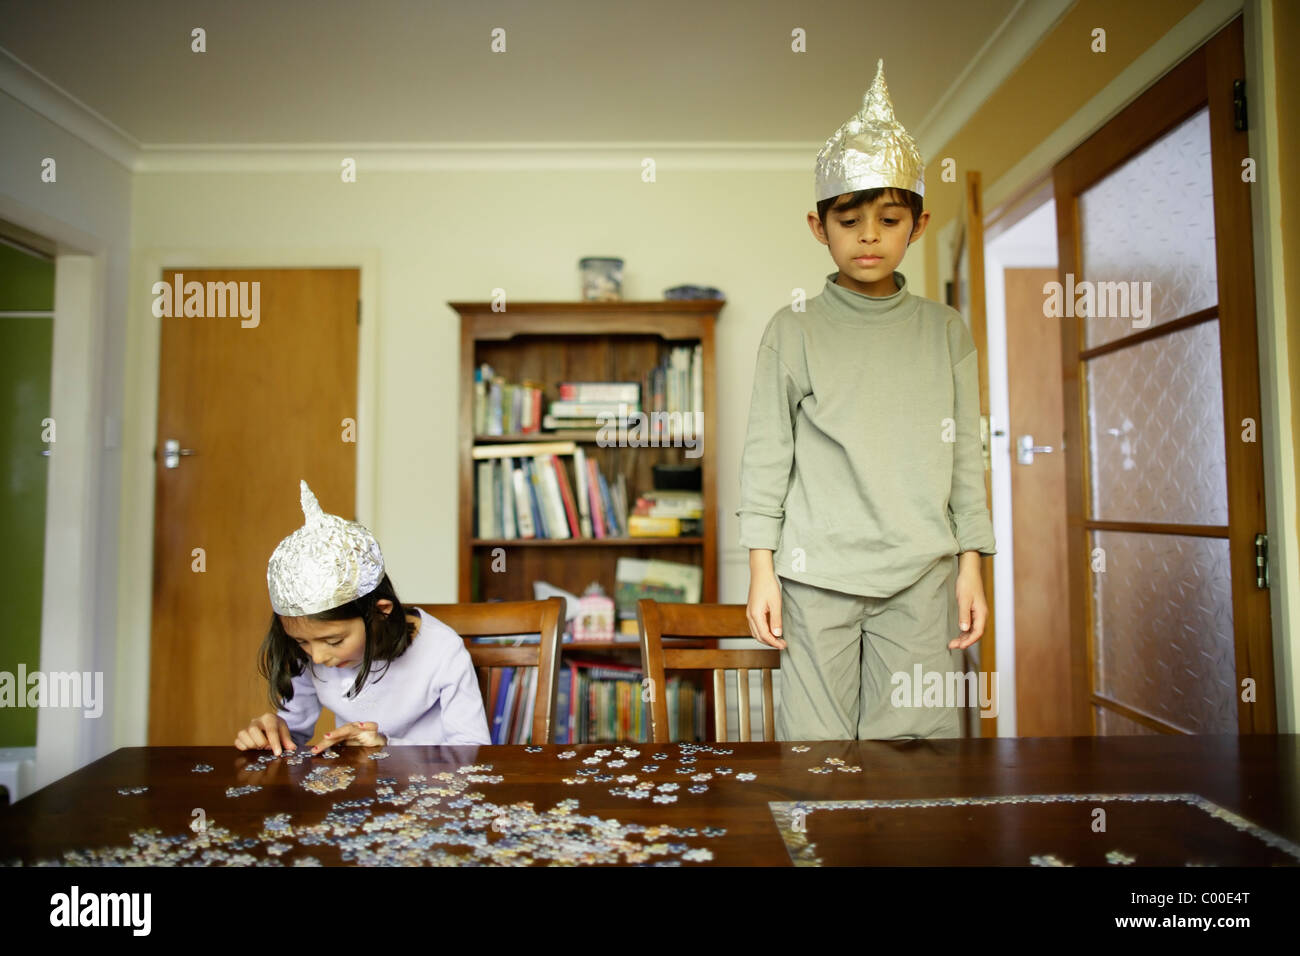 Attempting the jigsaw with foil hats. - Stock Image